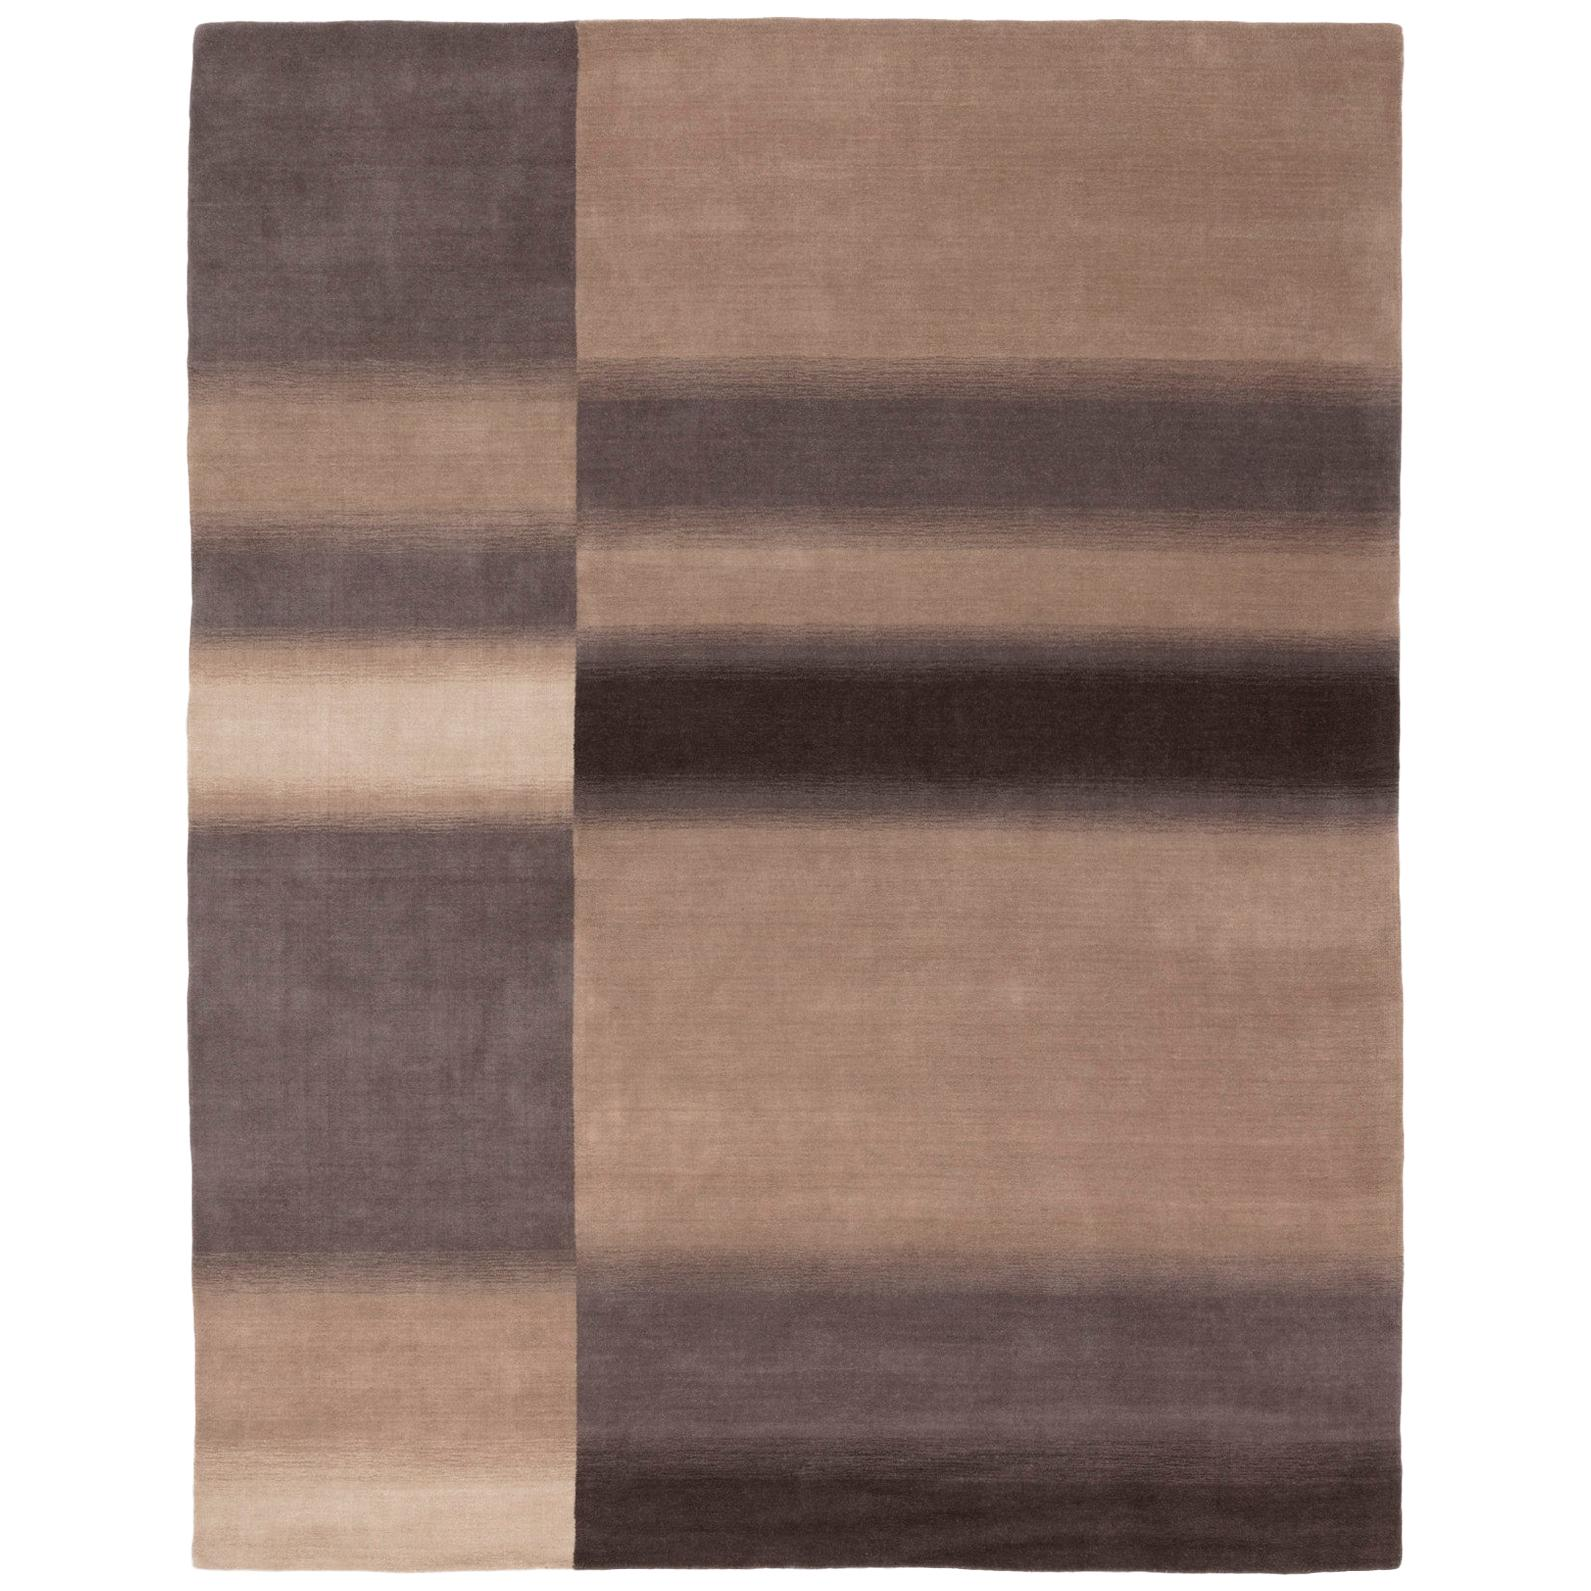 Standard Check Rug by CC-Tapis